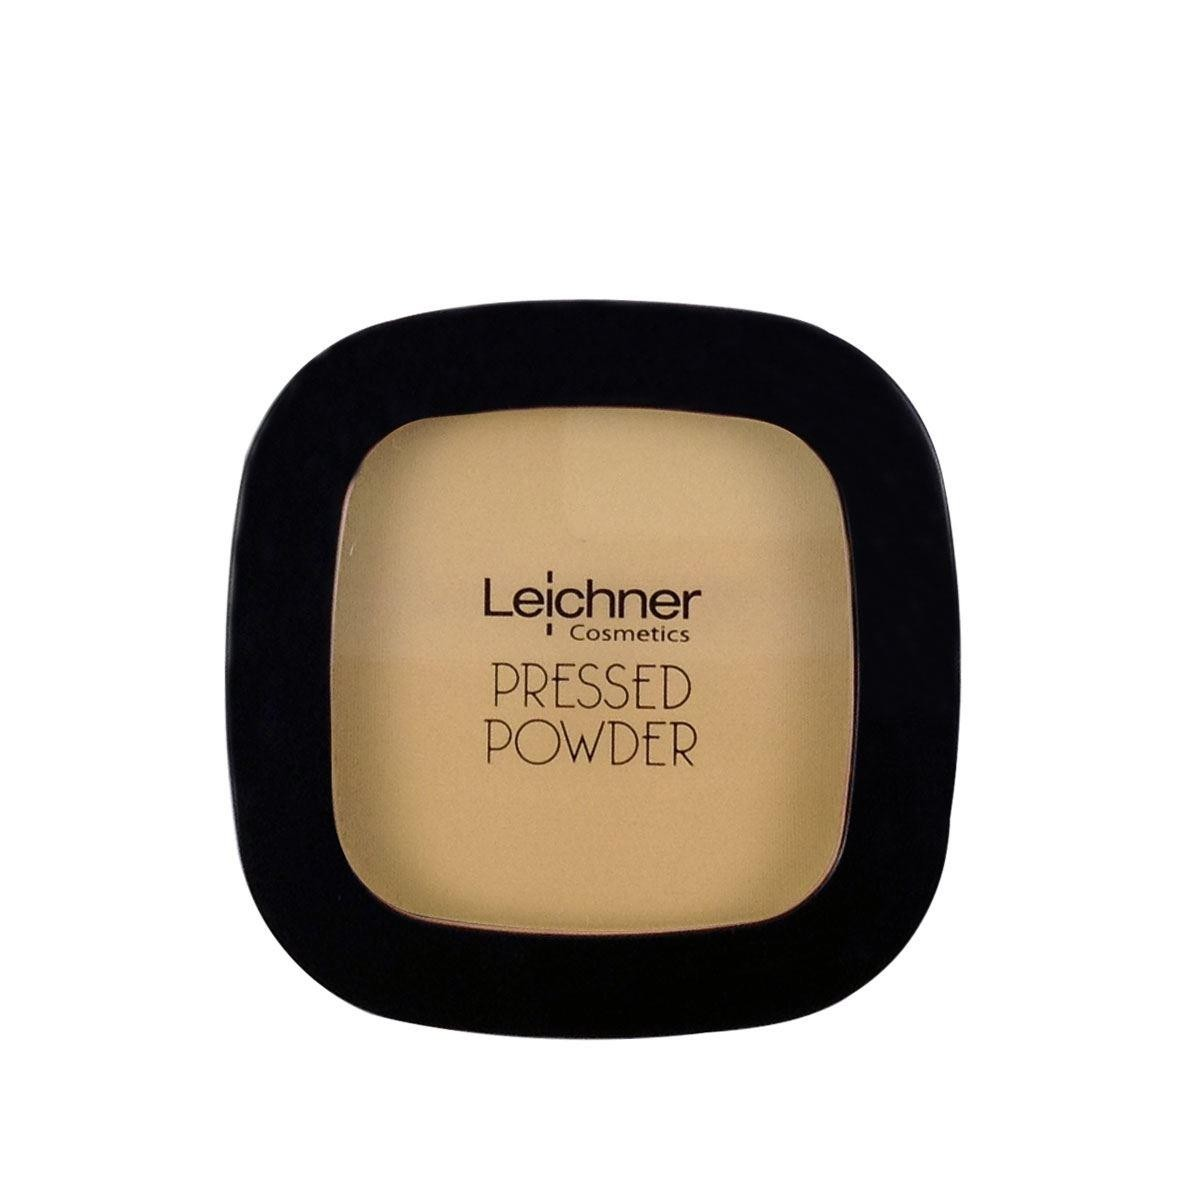 Leichner Pressed Powder 7g - (01 Translucent)